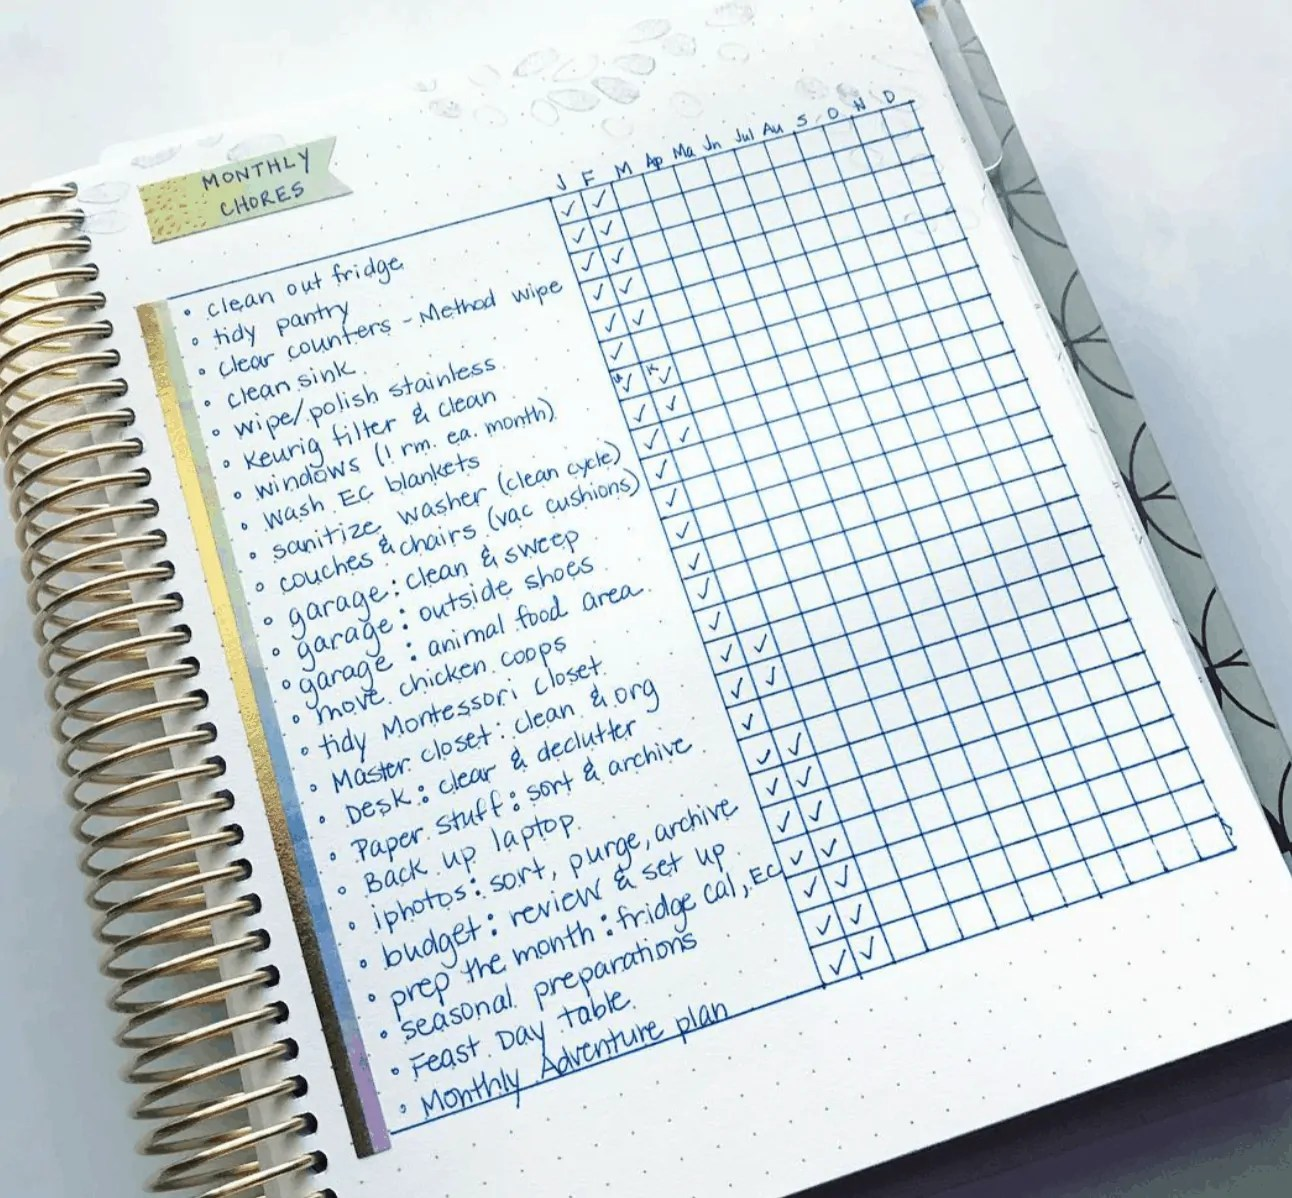 monthly chores ideas bullet journal